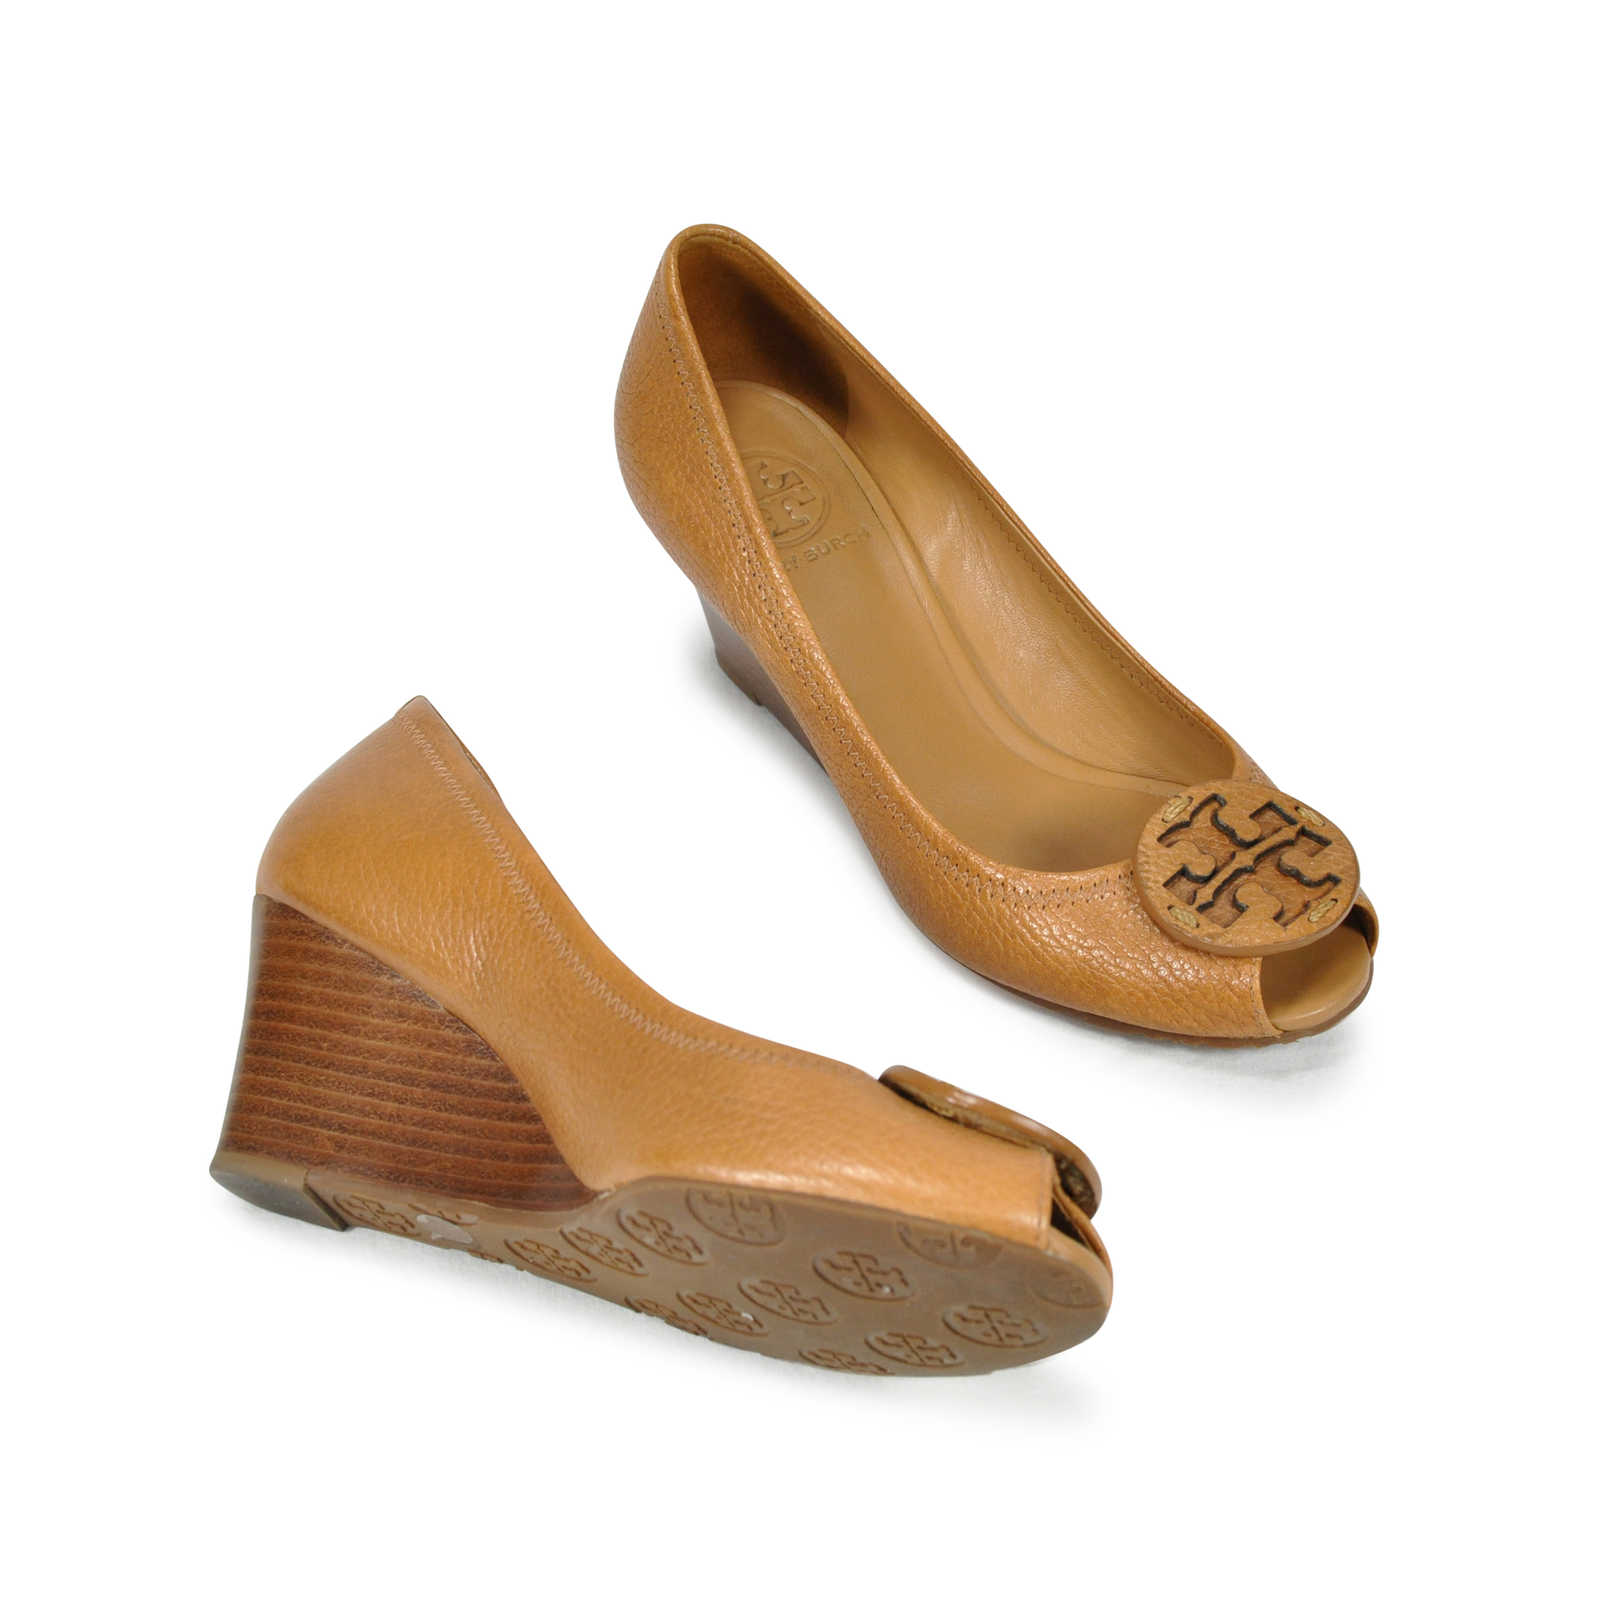 51cf91d62 ... Authentic Second Hand Tory Burch Sally Peep Toe Wedges (PSS-243-00003)  ...